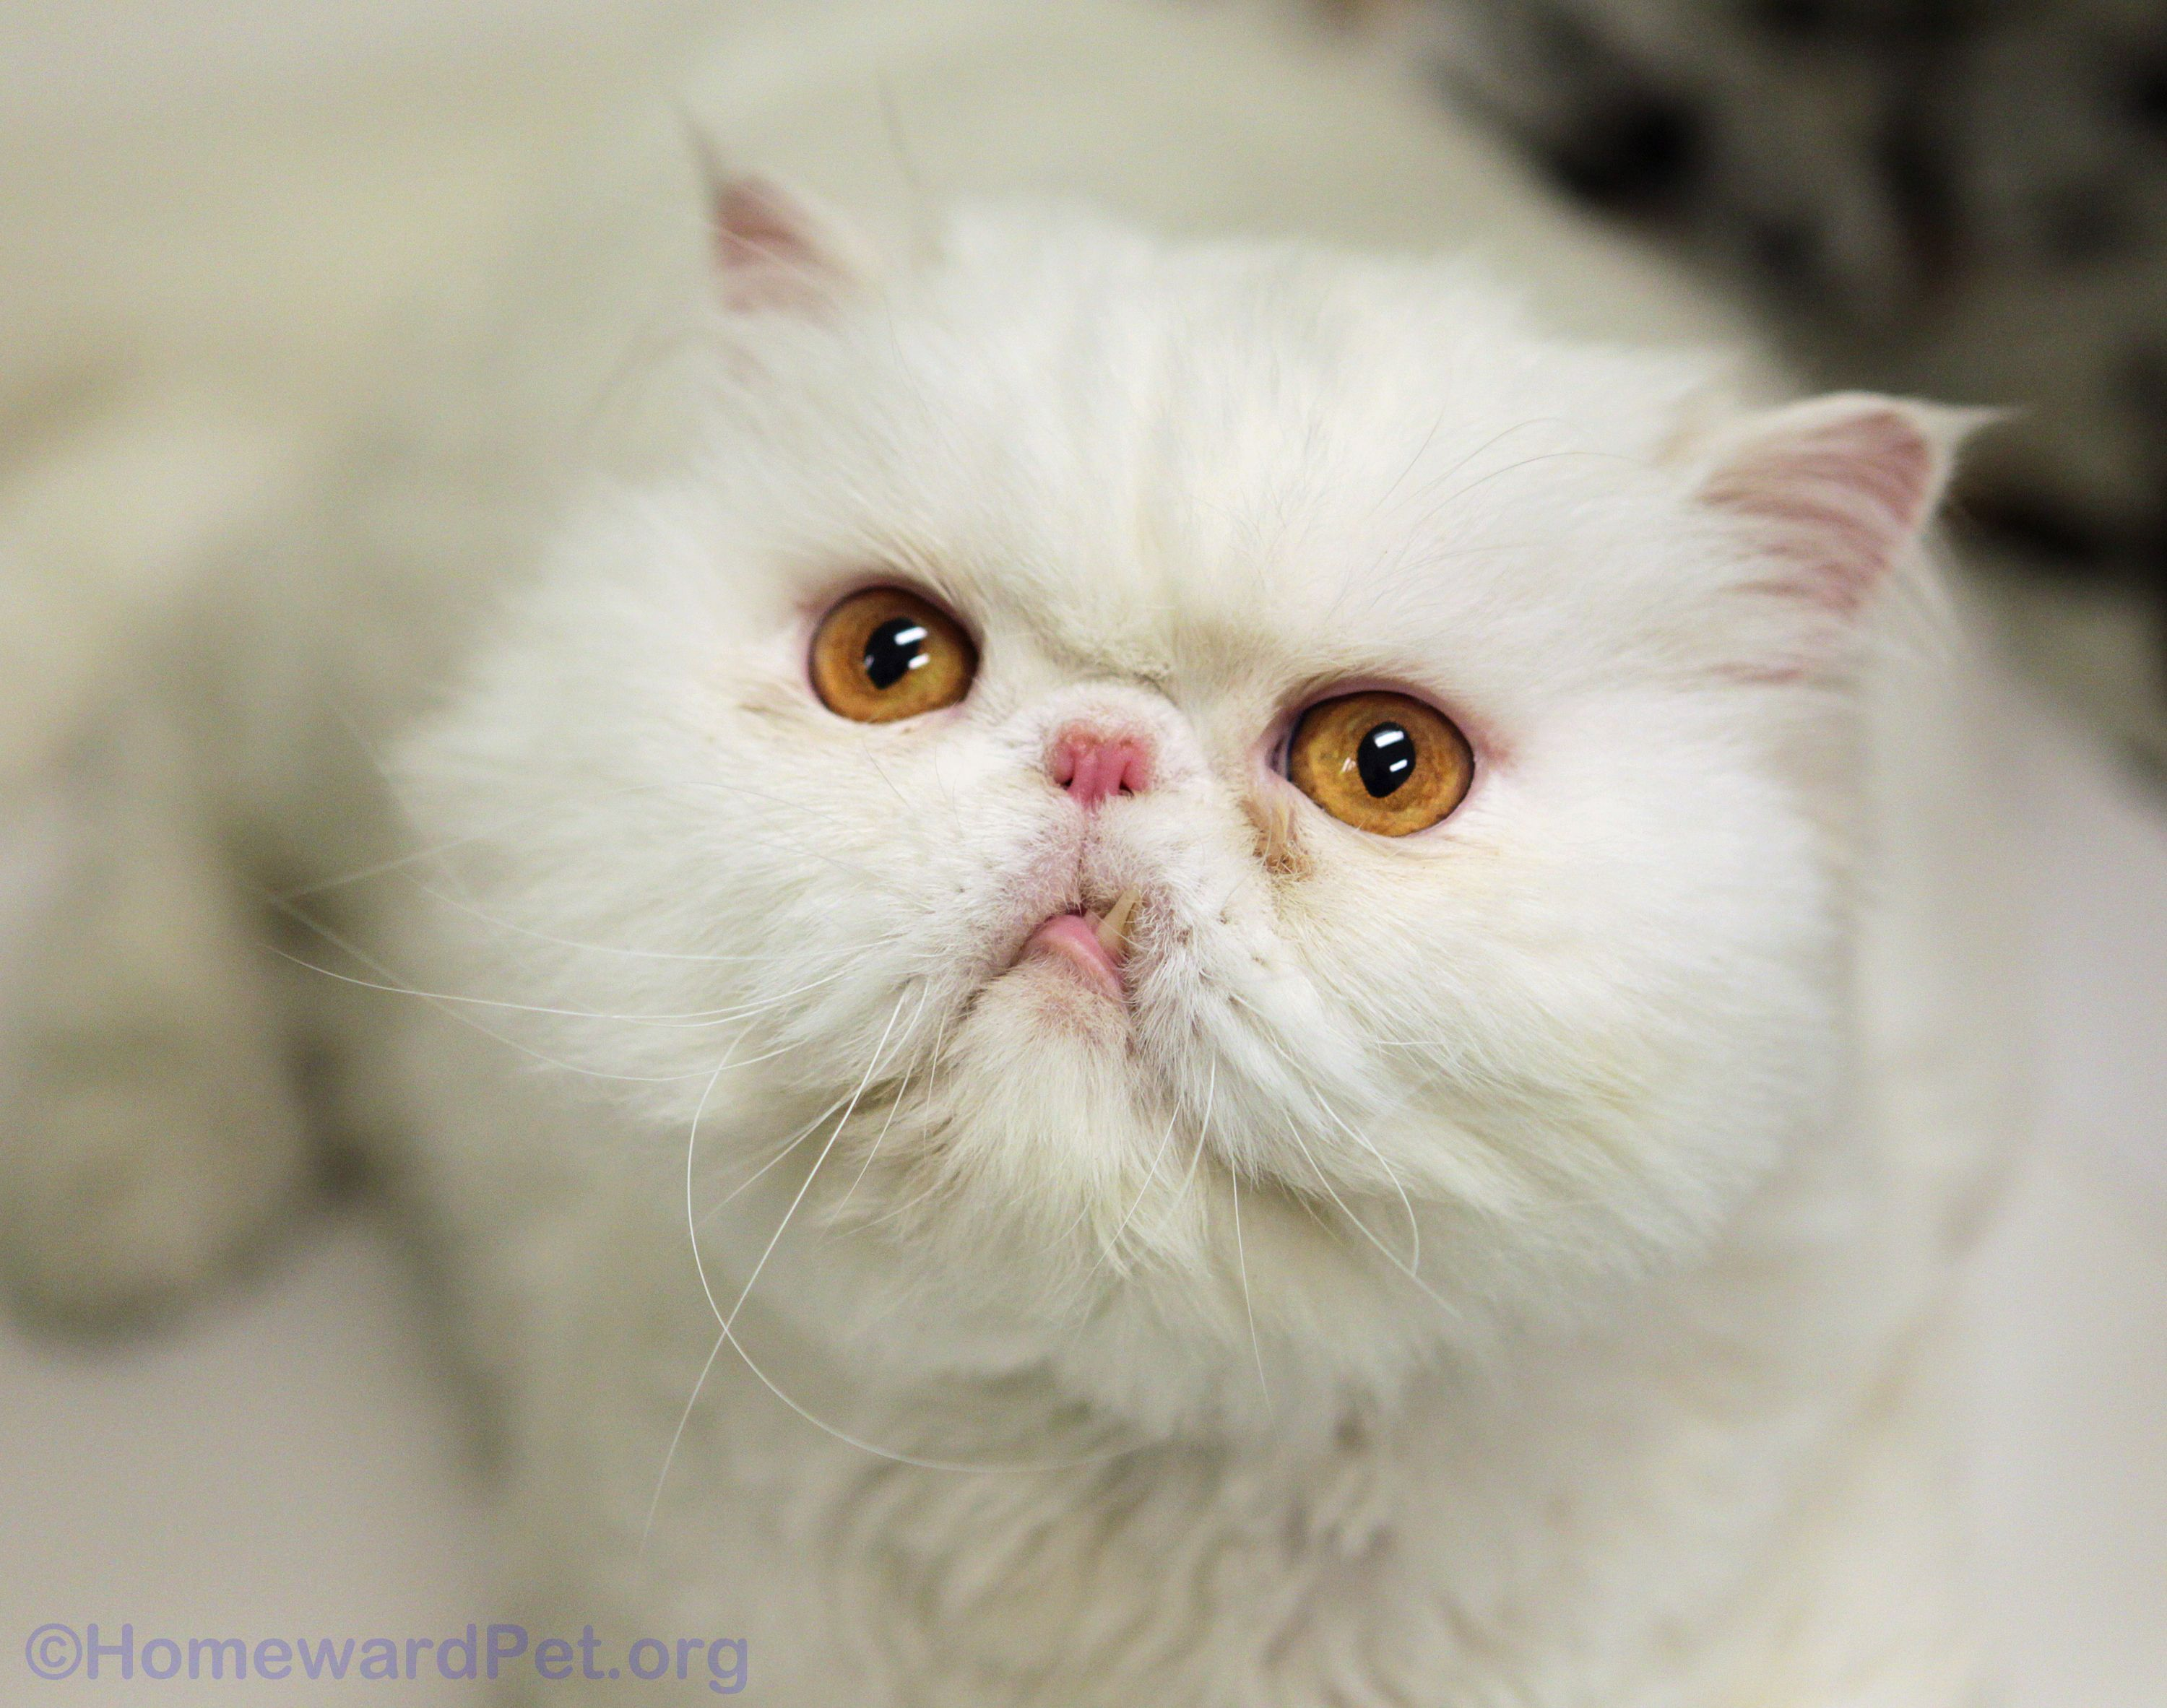 Meet handsome Jojo, a pure white Persian with an adorable